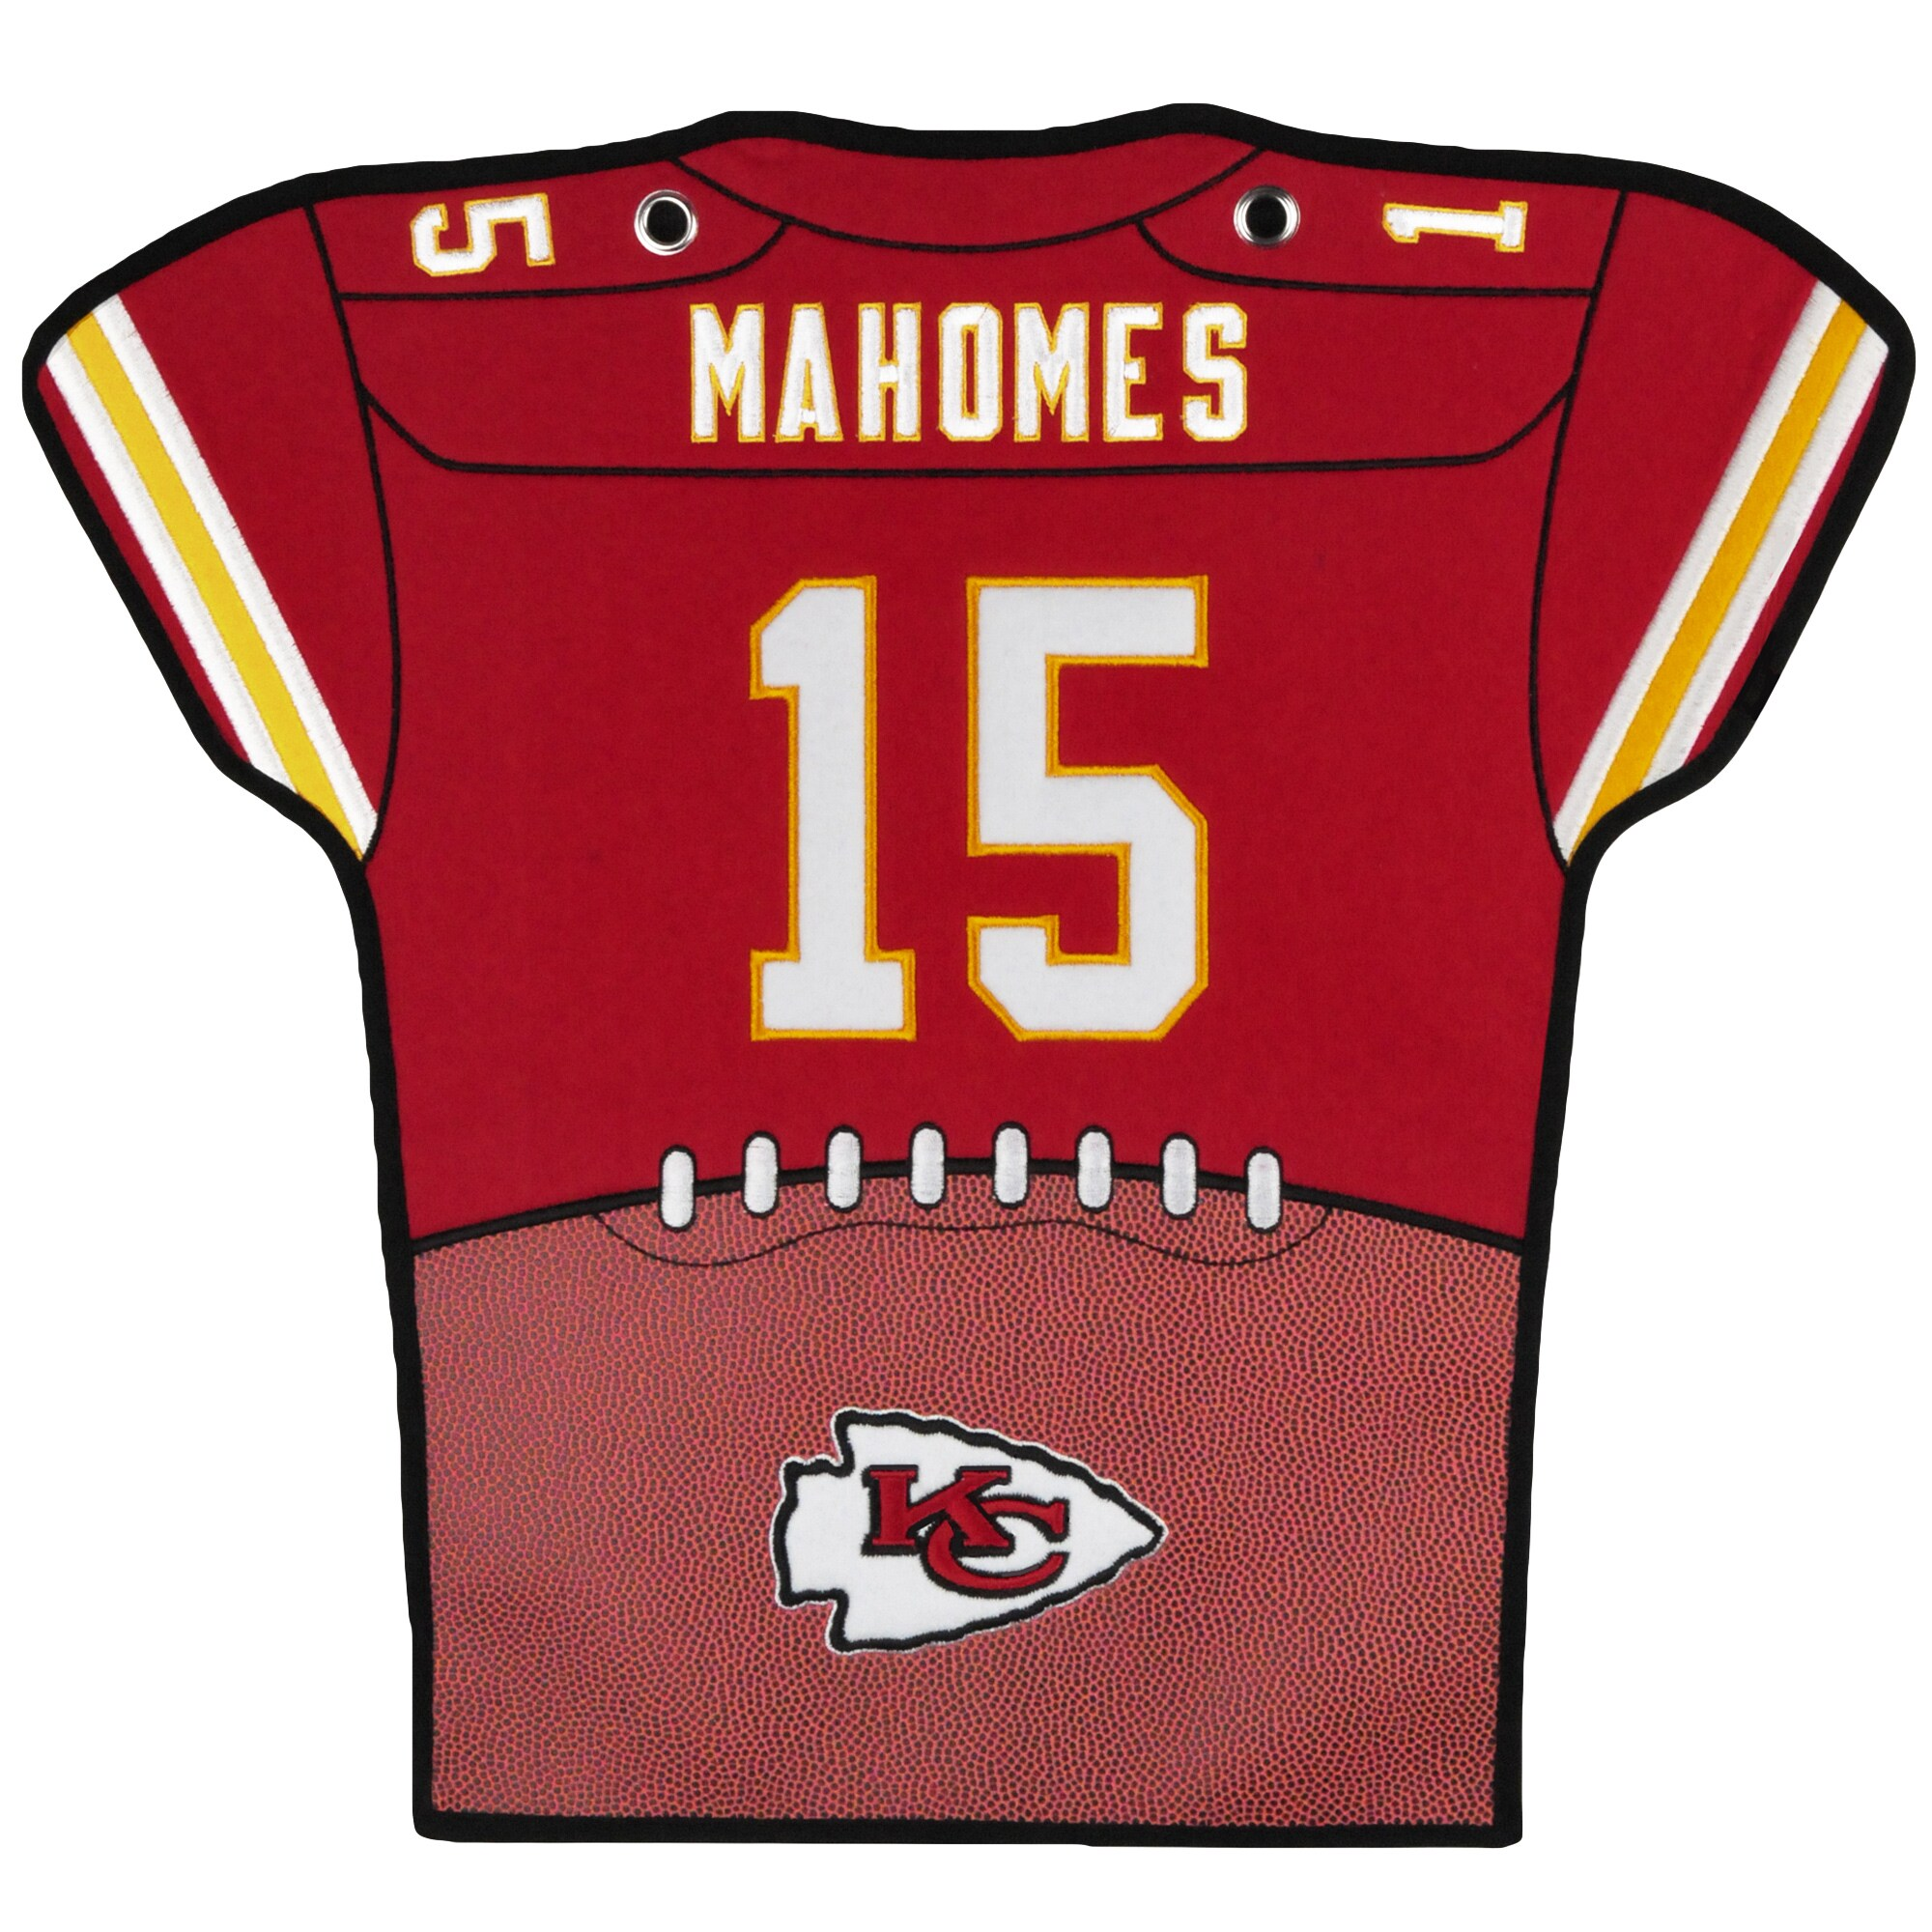 Patrick Mahomes Kansas City Chiefs 14'' x 22'' Jersey Traditions Banner - Red/Yellow